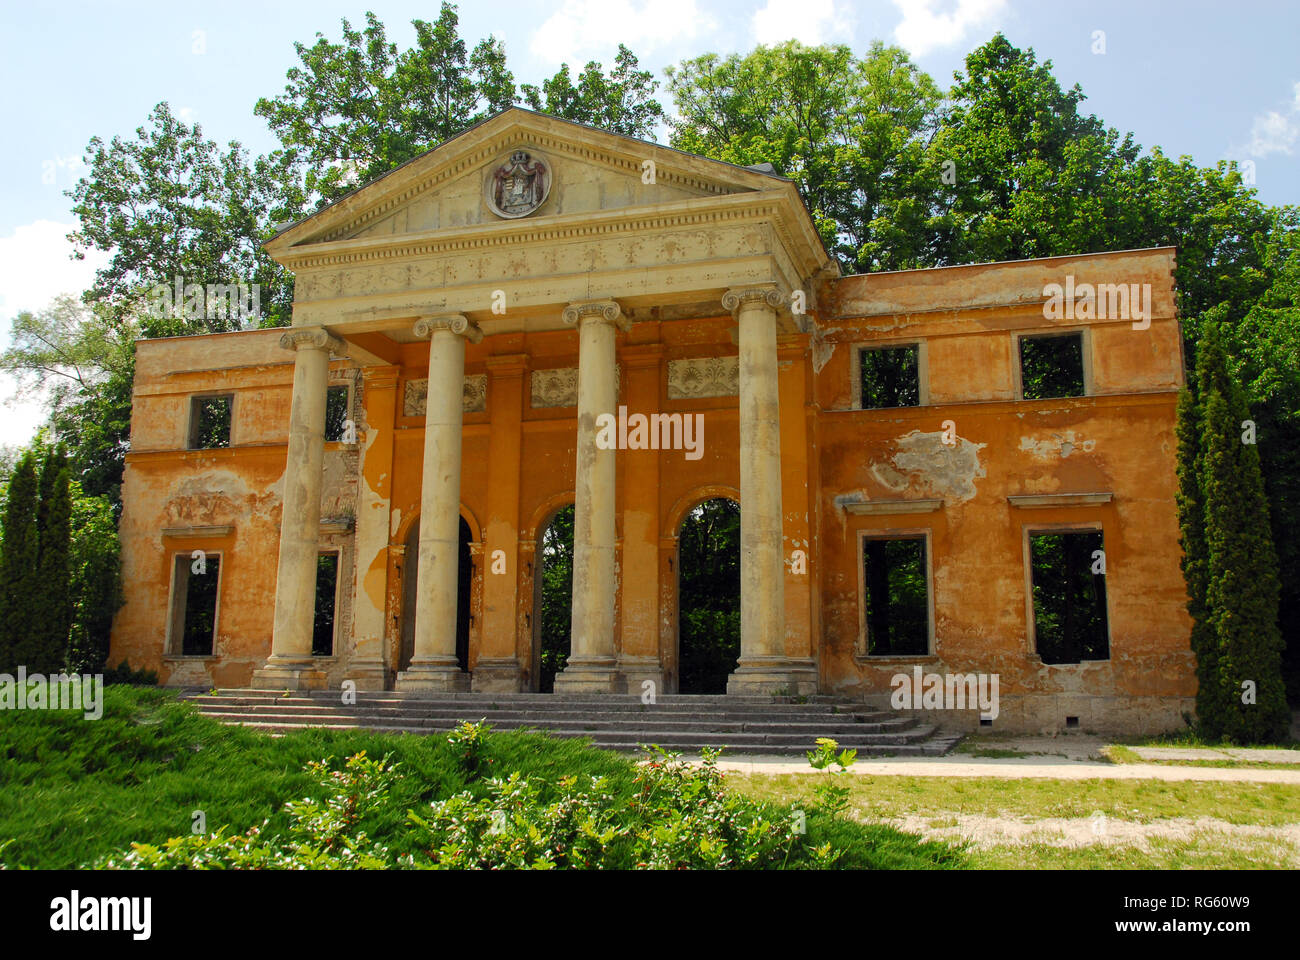 Ruins of the destroyed Habsburg Palace in Alcsútdoboz, Hungary. Az ...